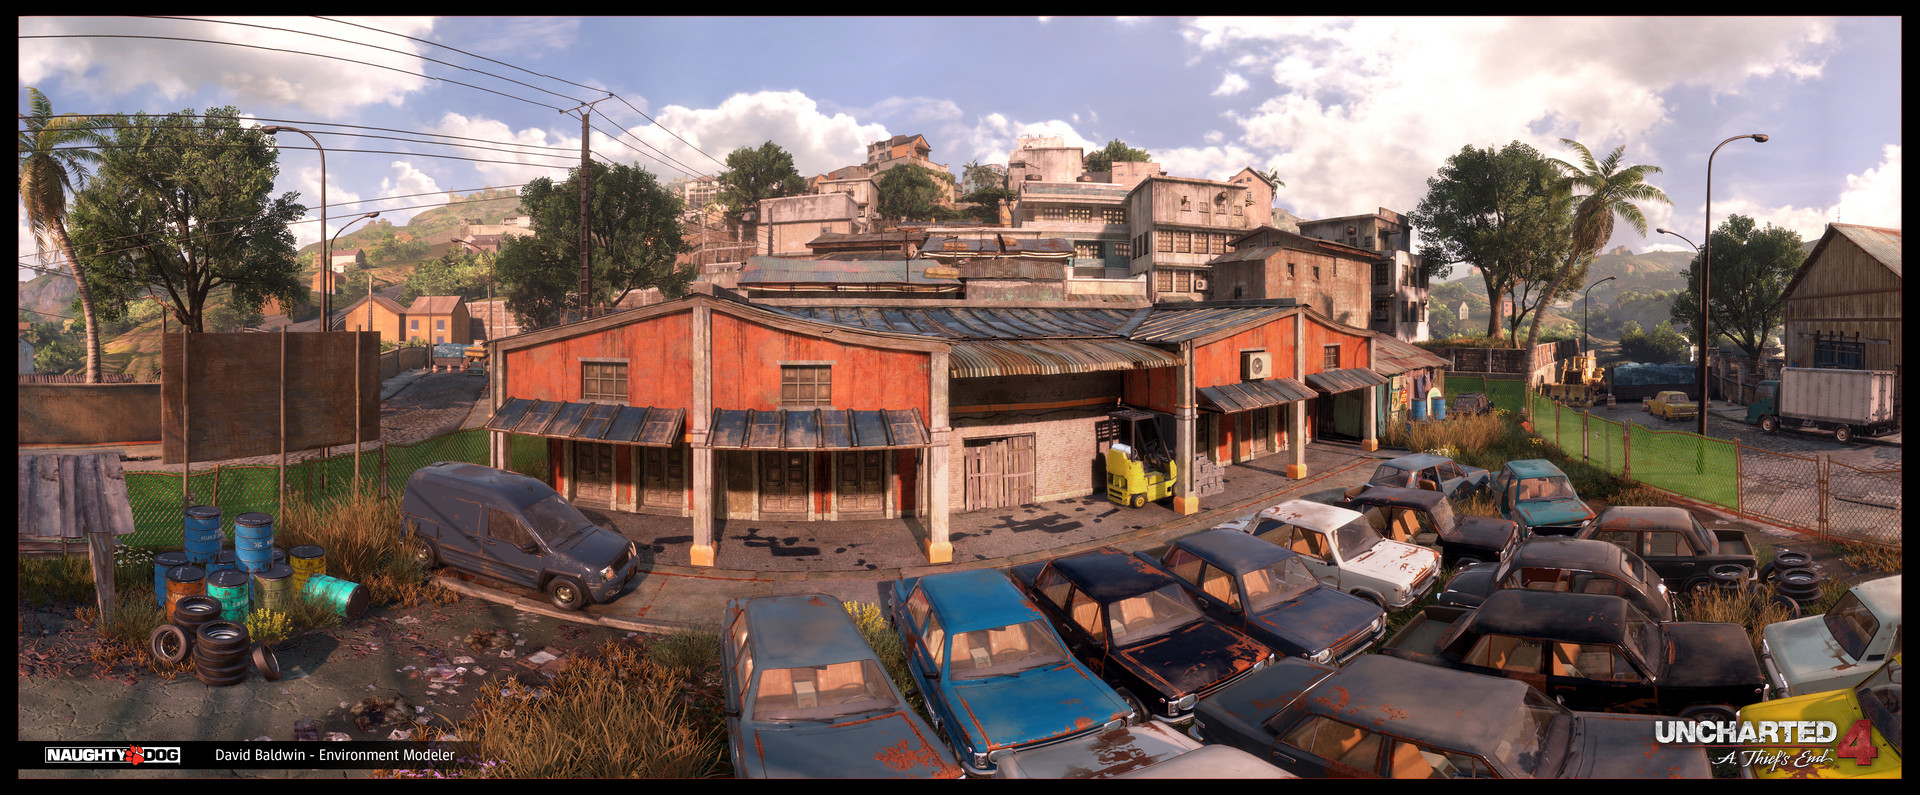 Madagascar City - Junkyard